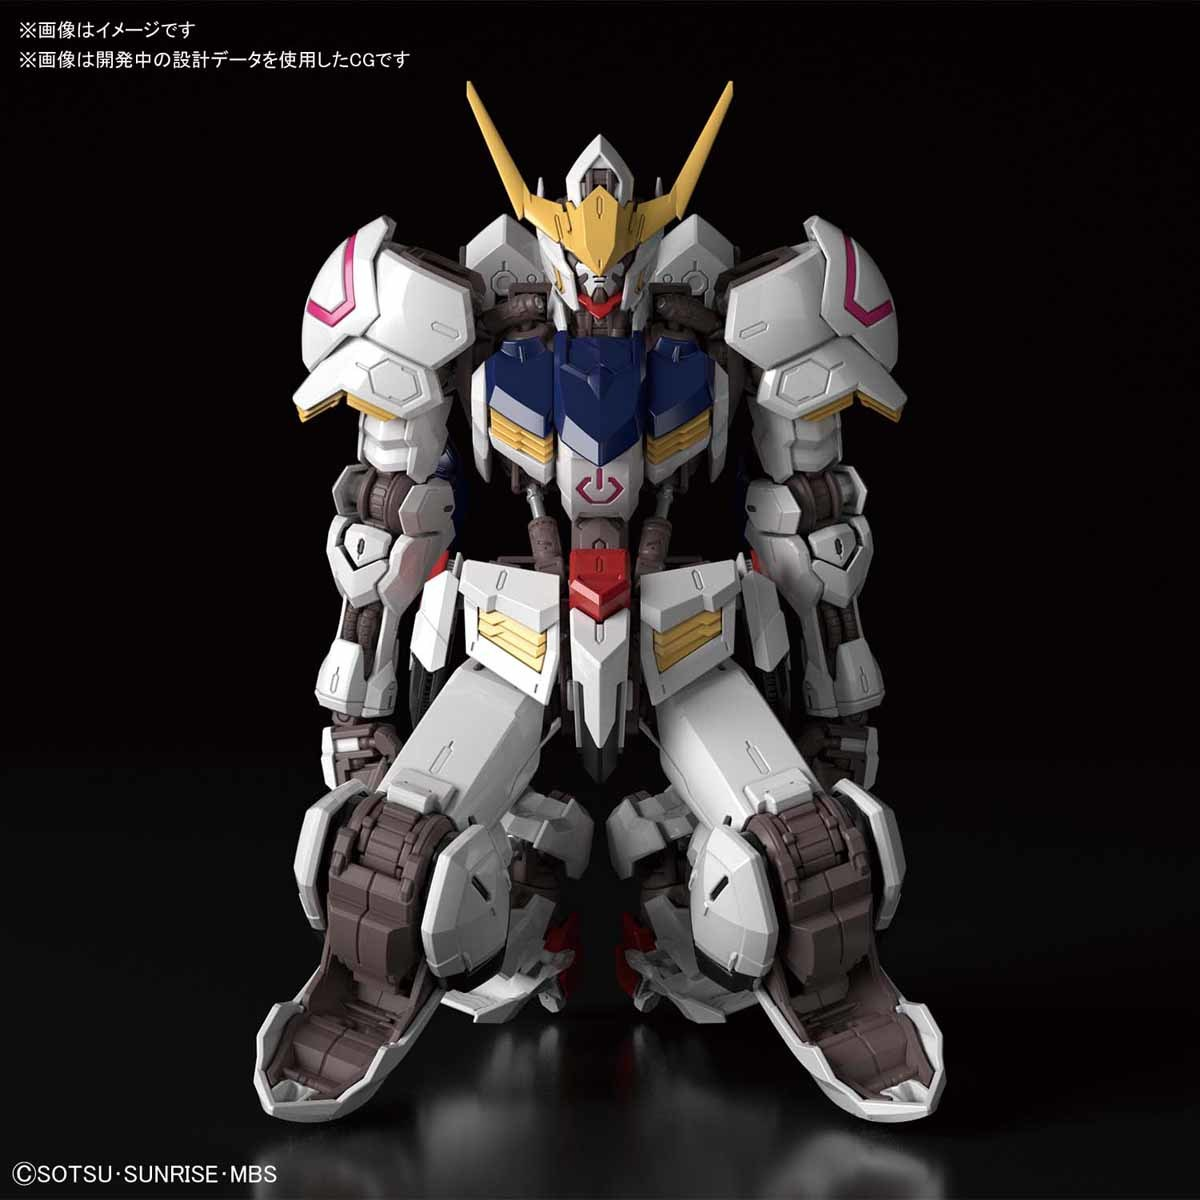 NEW IMAGES MG 1/100 GUNDAM BARBATOS